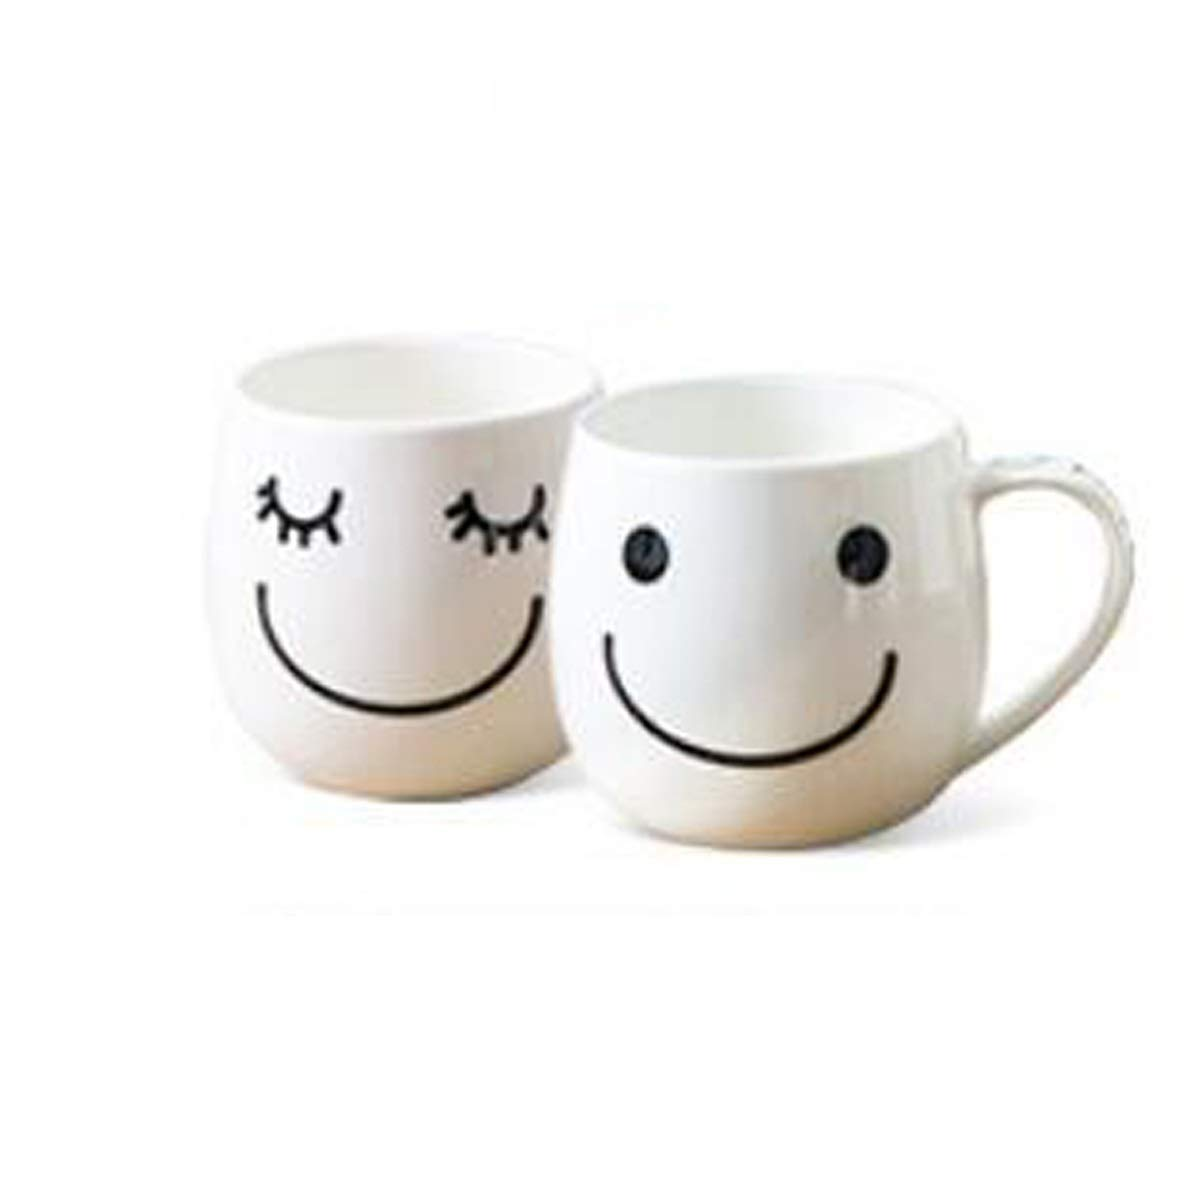 SHENGSHIHUIZHONG Porcelain Soul, Creative Cartoon Fashion Ceramic Mug, Couple Cup, Coffee Cup, Good Mood Smile Cup, 2 Pack White Coffee Cup, (Color : White)